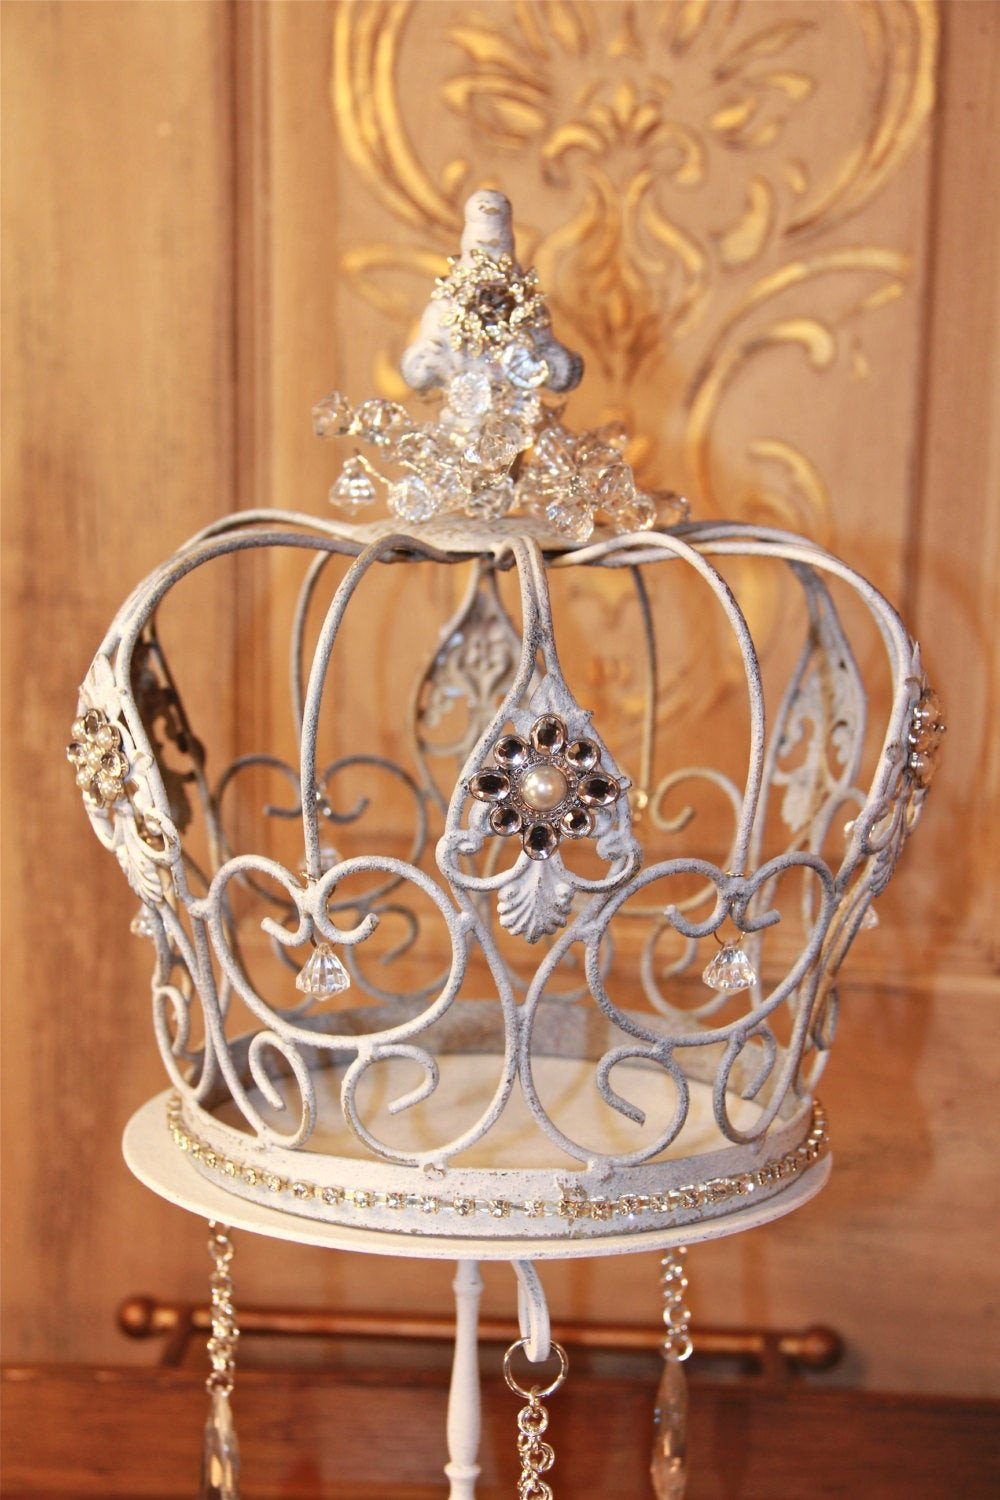 Decorative Crowns for Home Decor Luxury Embellished White Metal Crown Decorative Crown Wedding